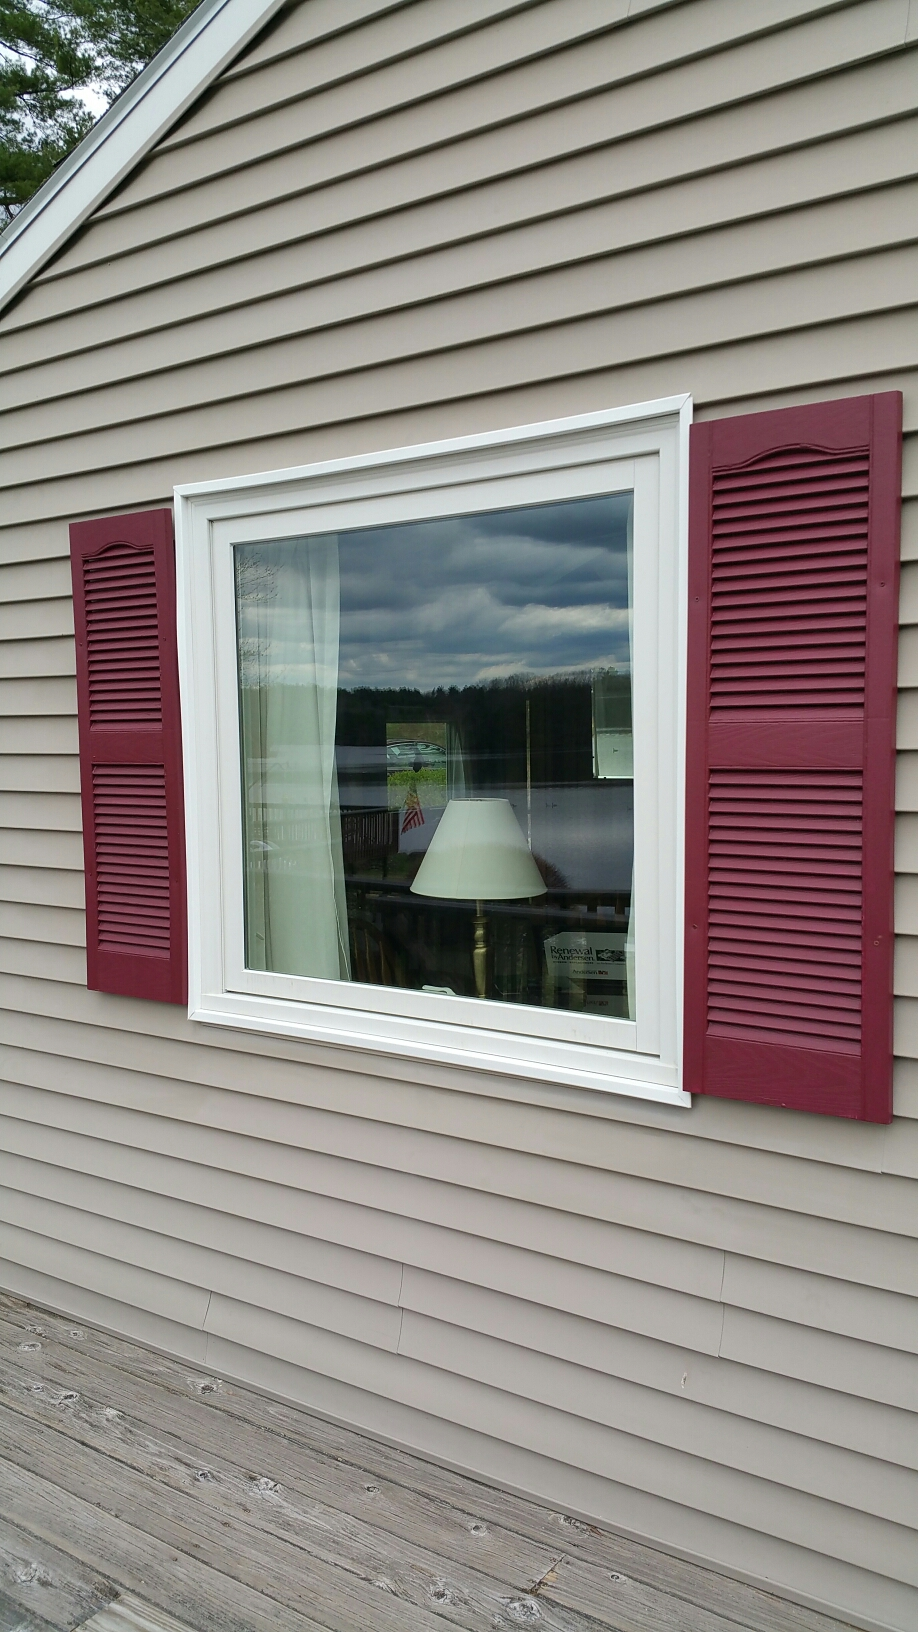 Woodstock, CT - Gorgeous new Renewal by Andersen awning window that replaced two side by side double hungs. What a view of the lake this customer now has!